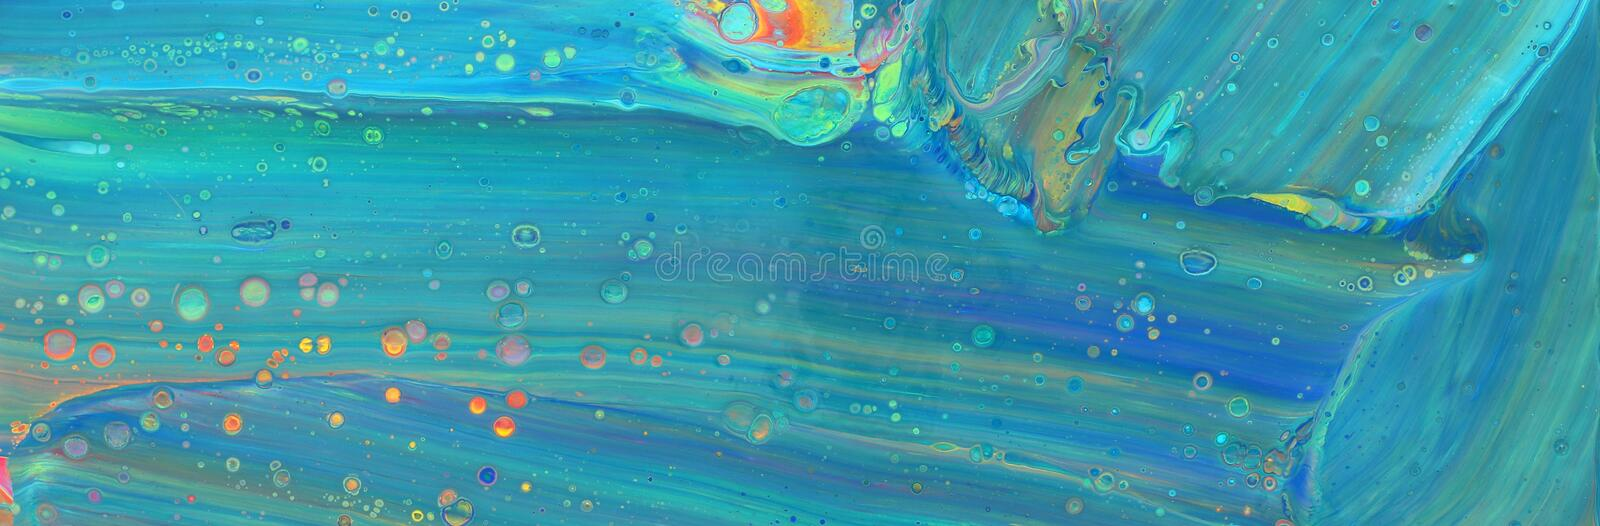 Photography of abstract marbleized effect background. Blue, mint and gold creative colors. Beautiful paint. banner.  royalty free stock images